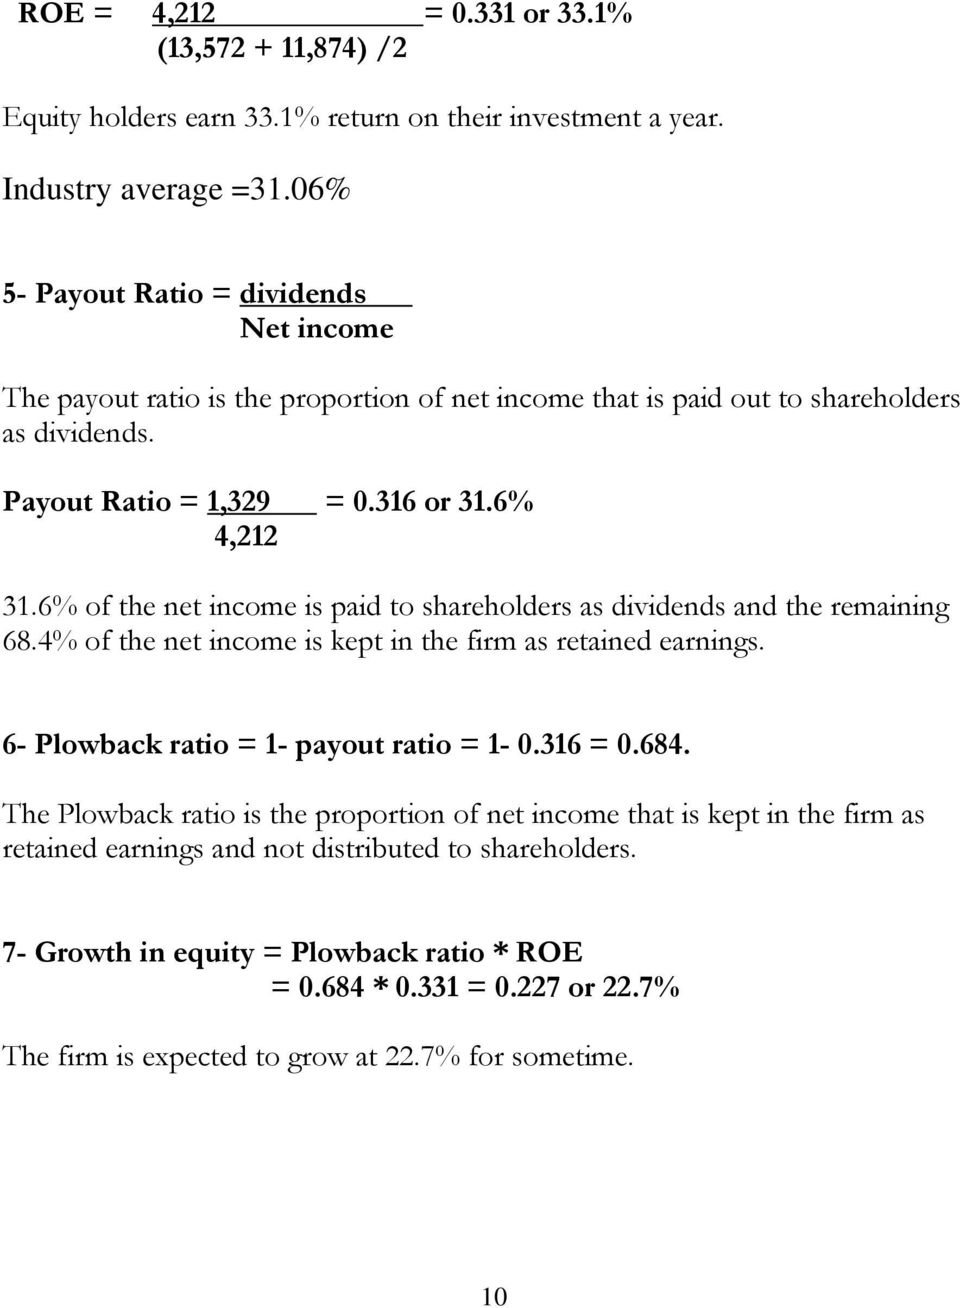 6% of the net income is paid to shareholders as dividends and the remaining 68.4% of the net income is kept in the firm as retained earnings. 6- Plowback ratio = 1- payout ratio = 1-0.316 = 0.